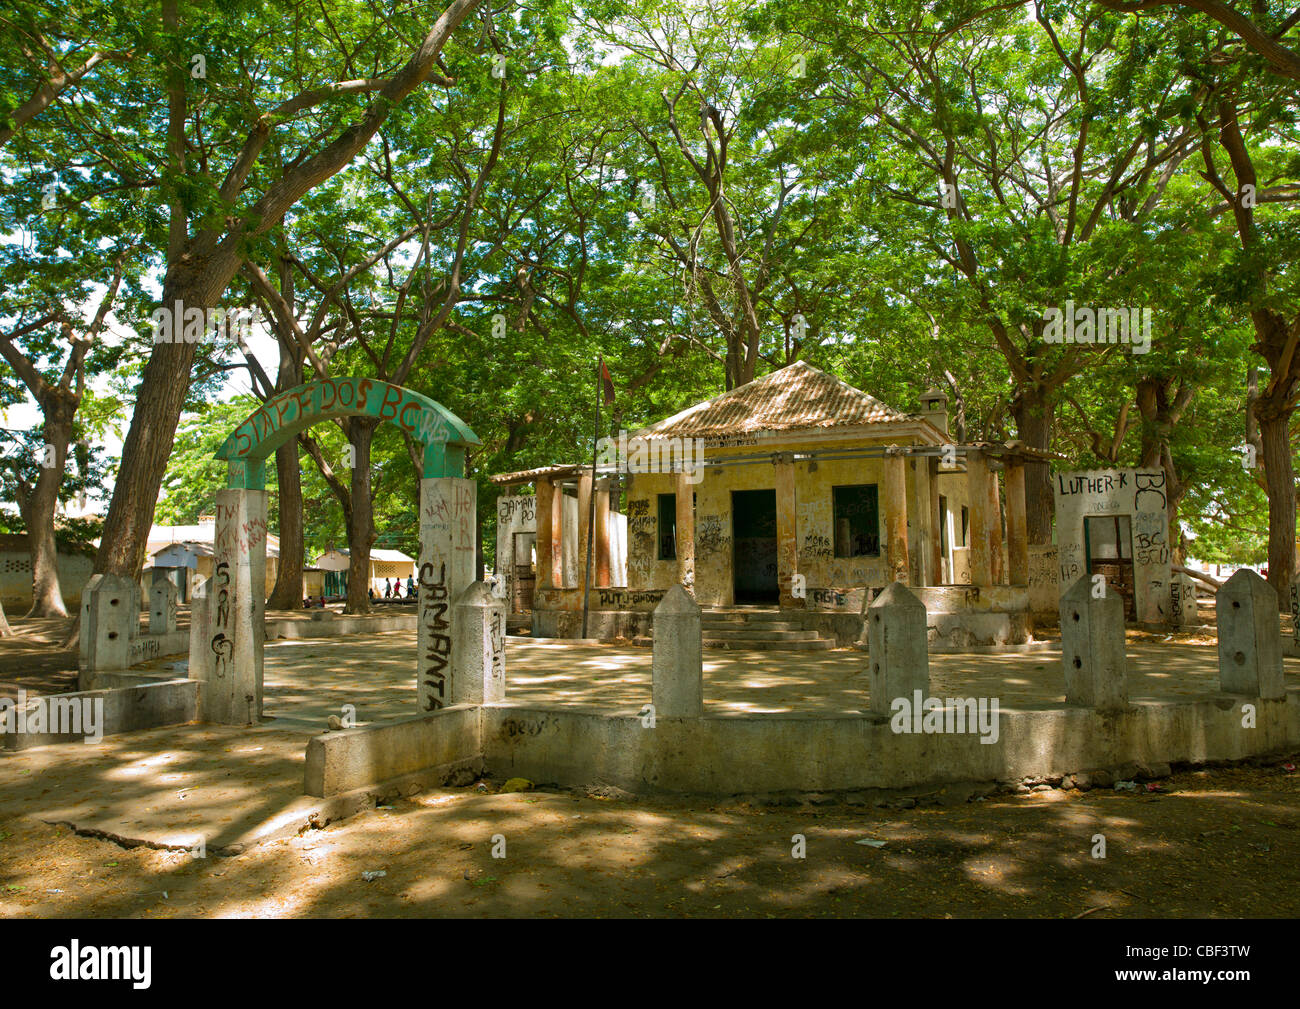 Building For Political Meetings In The Village Of Dombe Grande, Angola - Stock Image